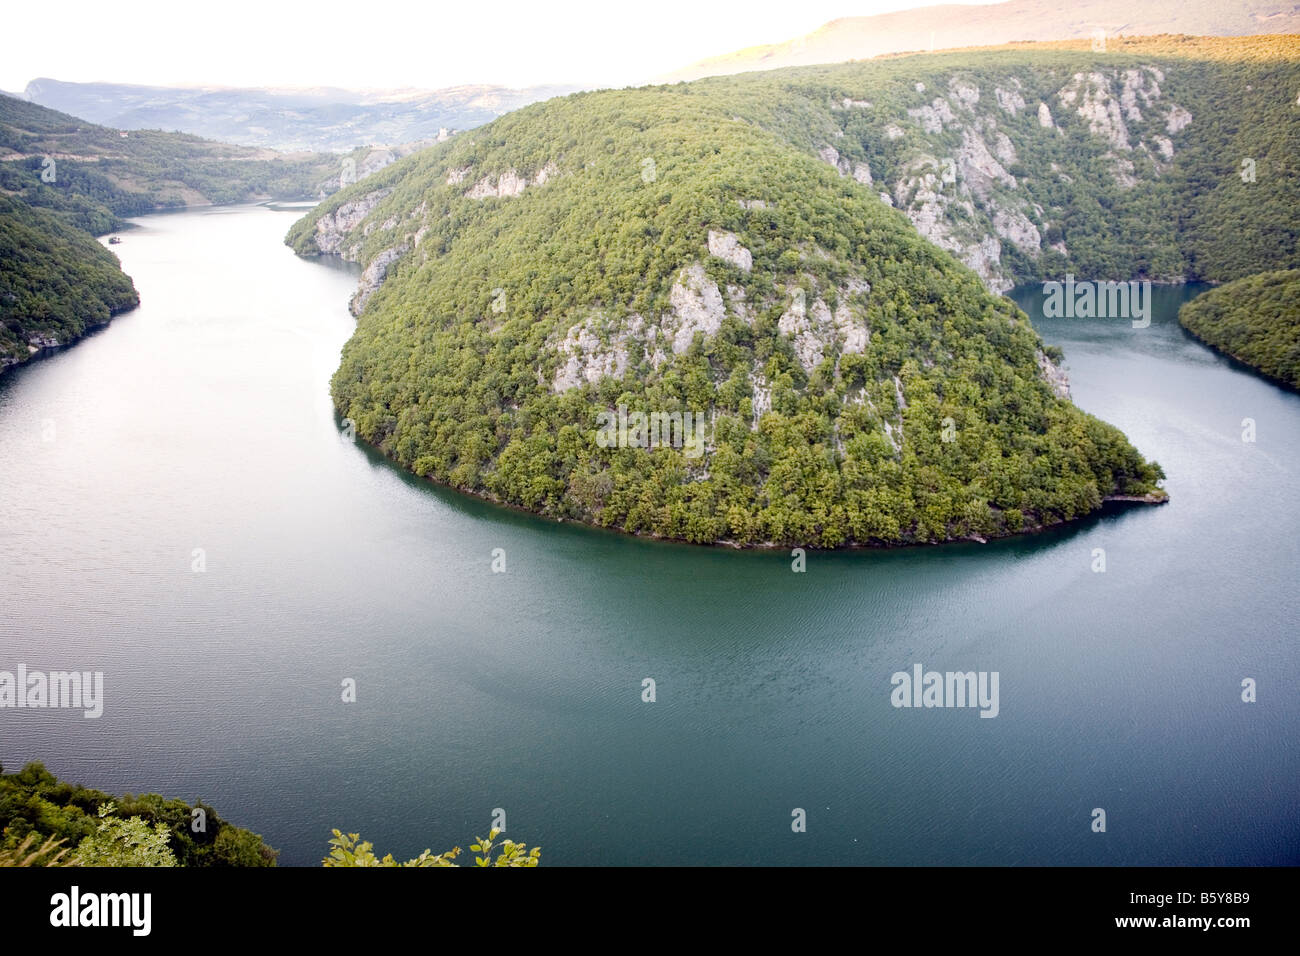 Artificial Lake Bocac  view from the road BanjaLuka Jajce Bosnia and Herzegovina Stock Photo